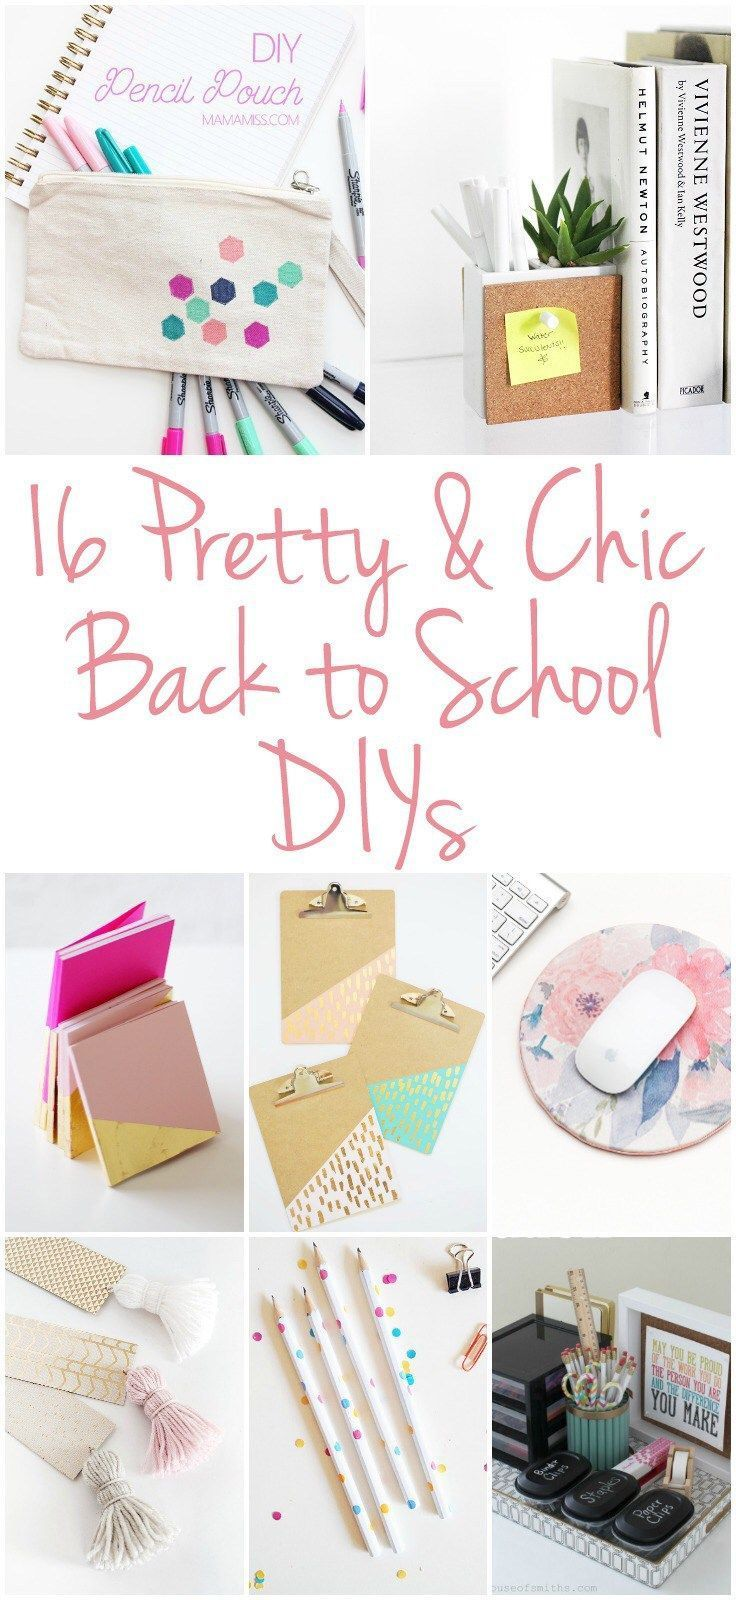 Photo of 16 CHIC BACK TO SCHOOL DIY PROJECTS